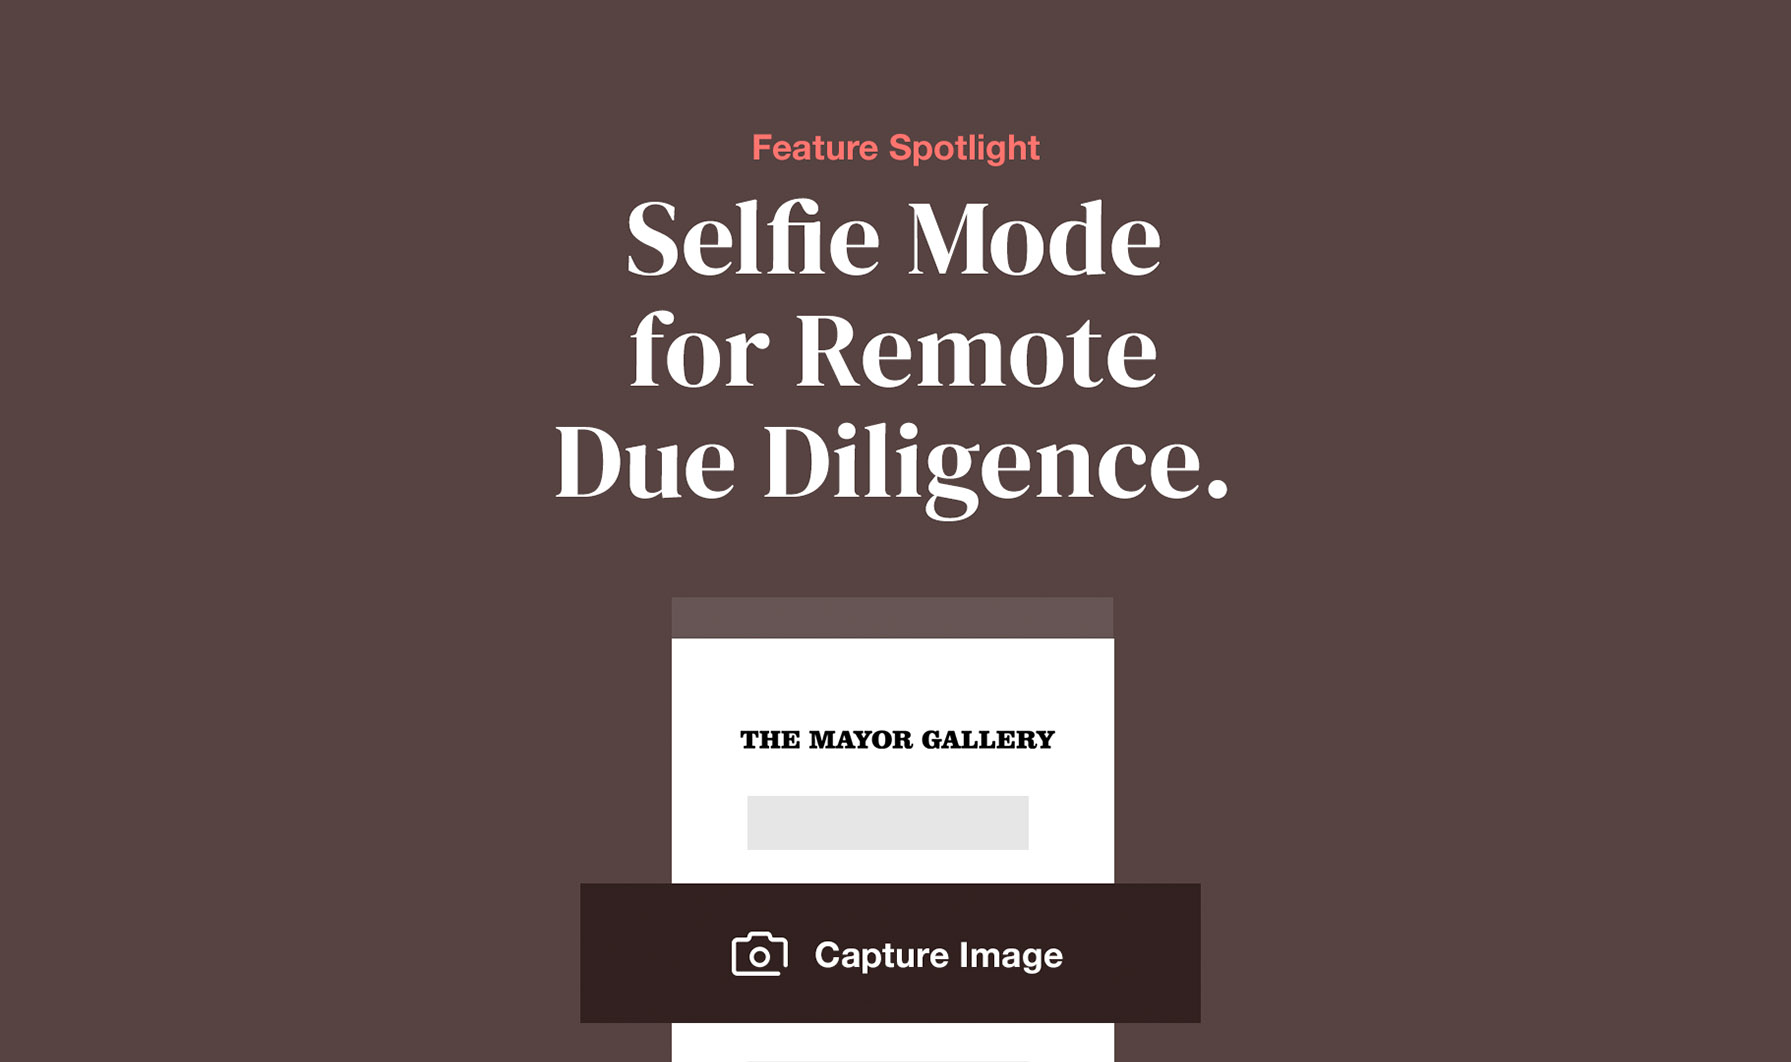 Feature Spotlight: Selfie Mode for Remote Due Diligence